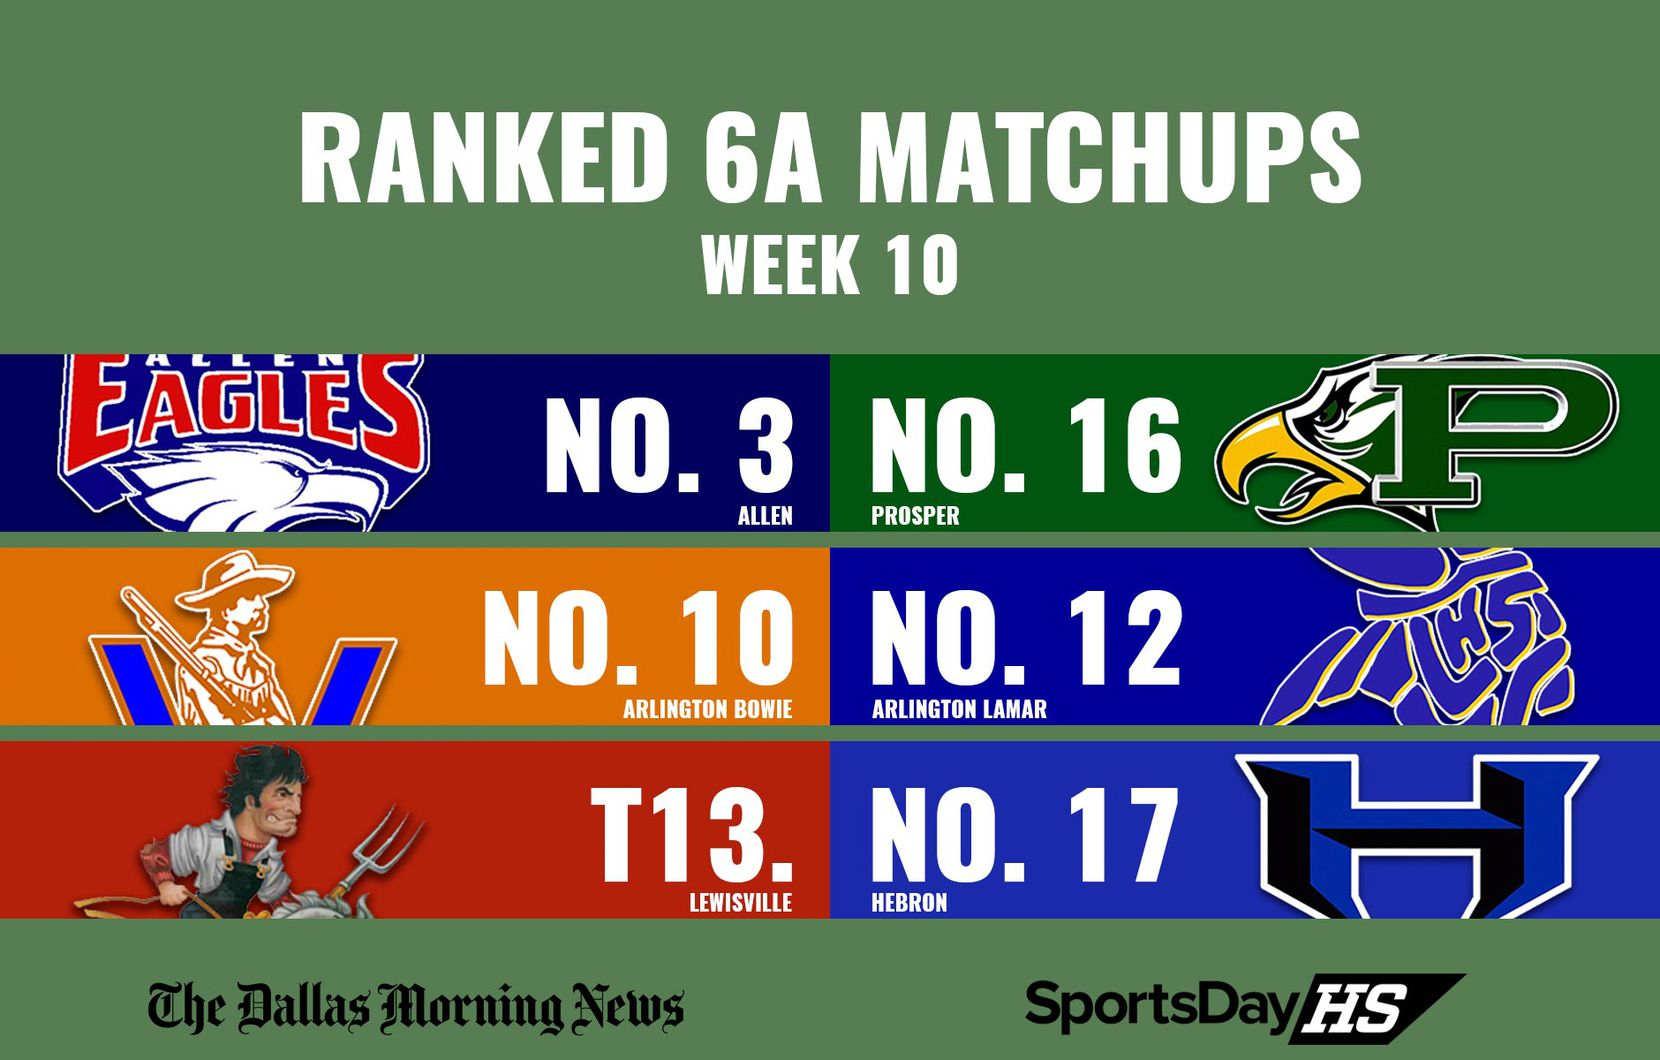 All ranked 6A matchups in Week 10.